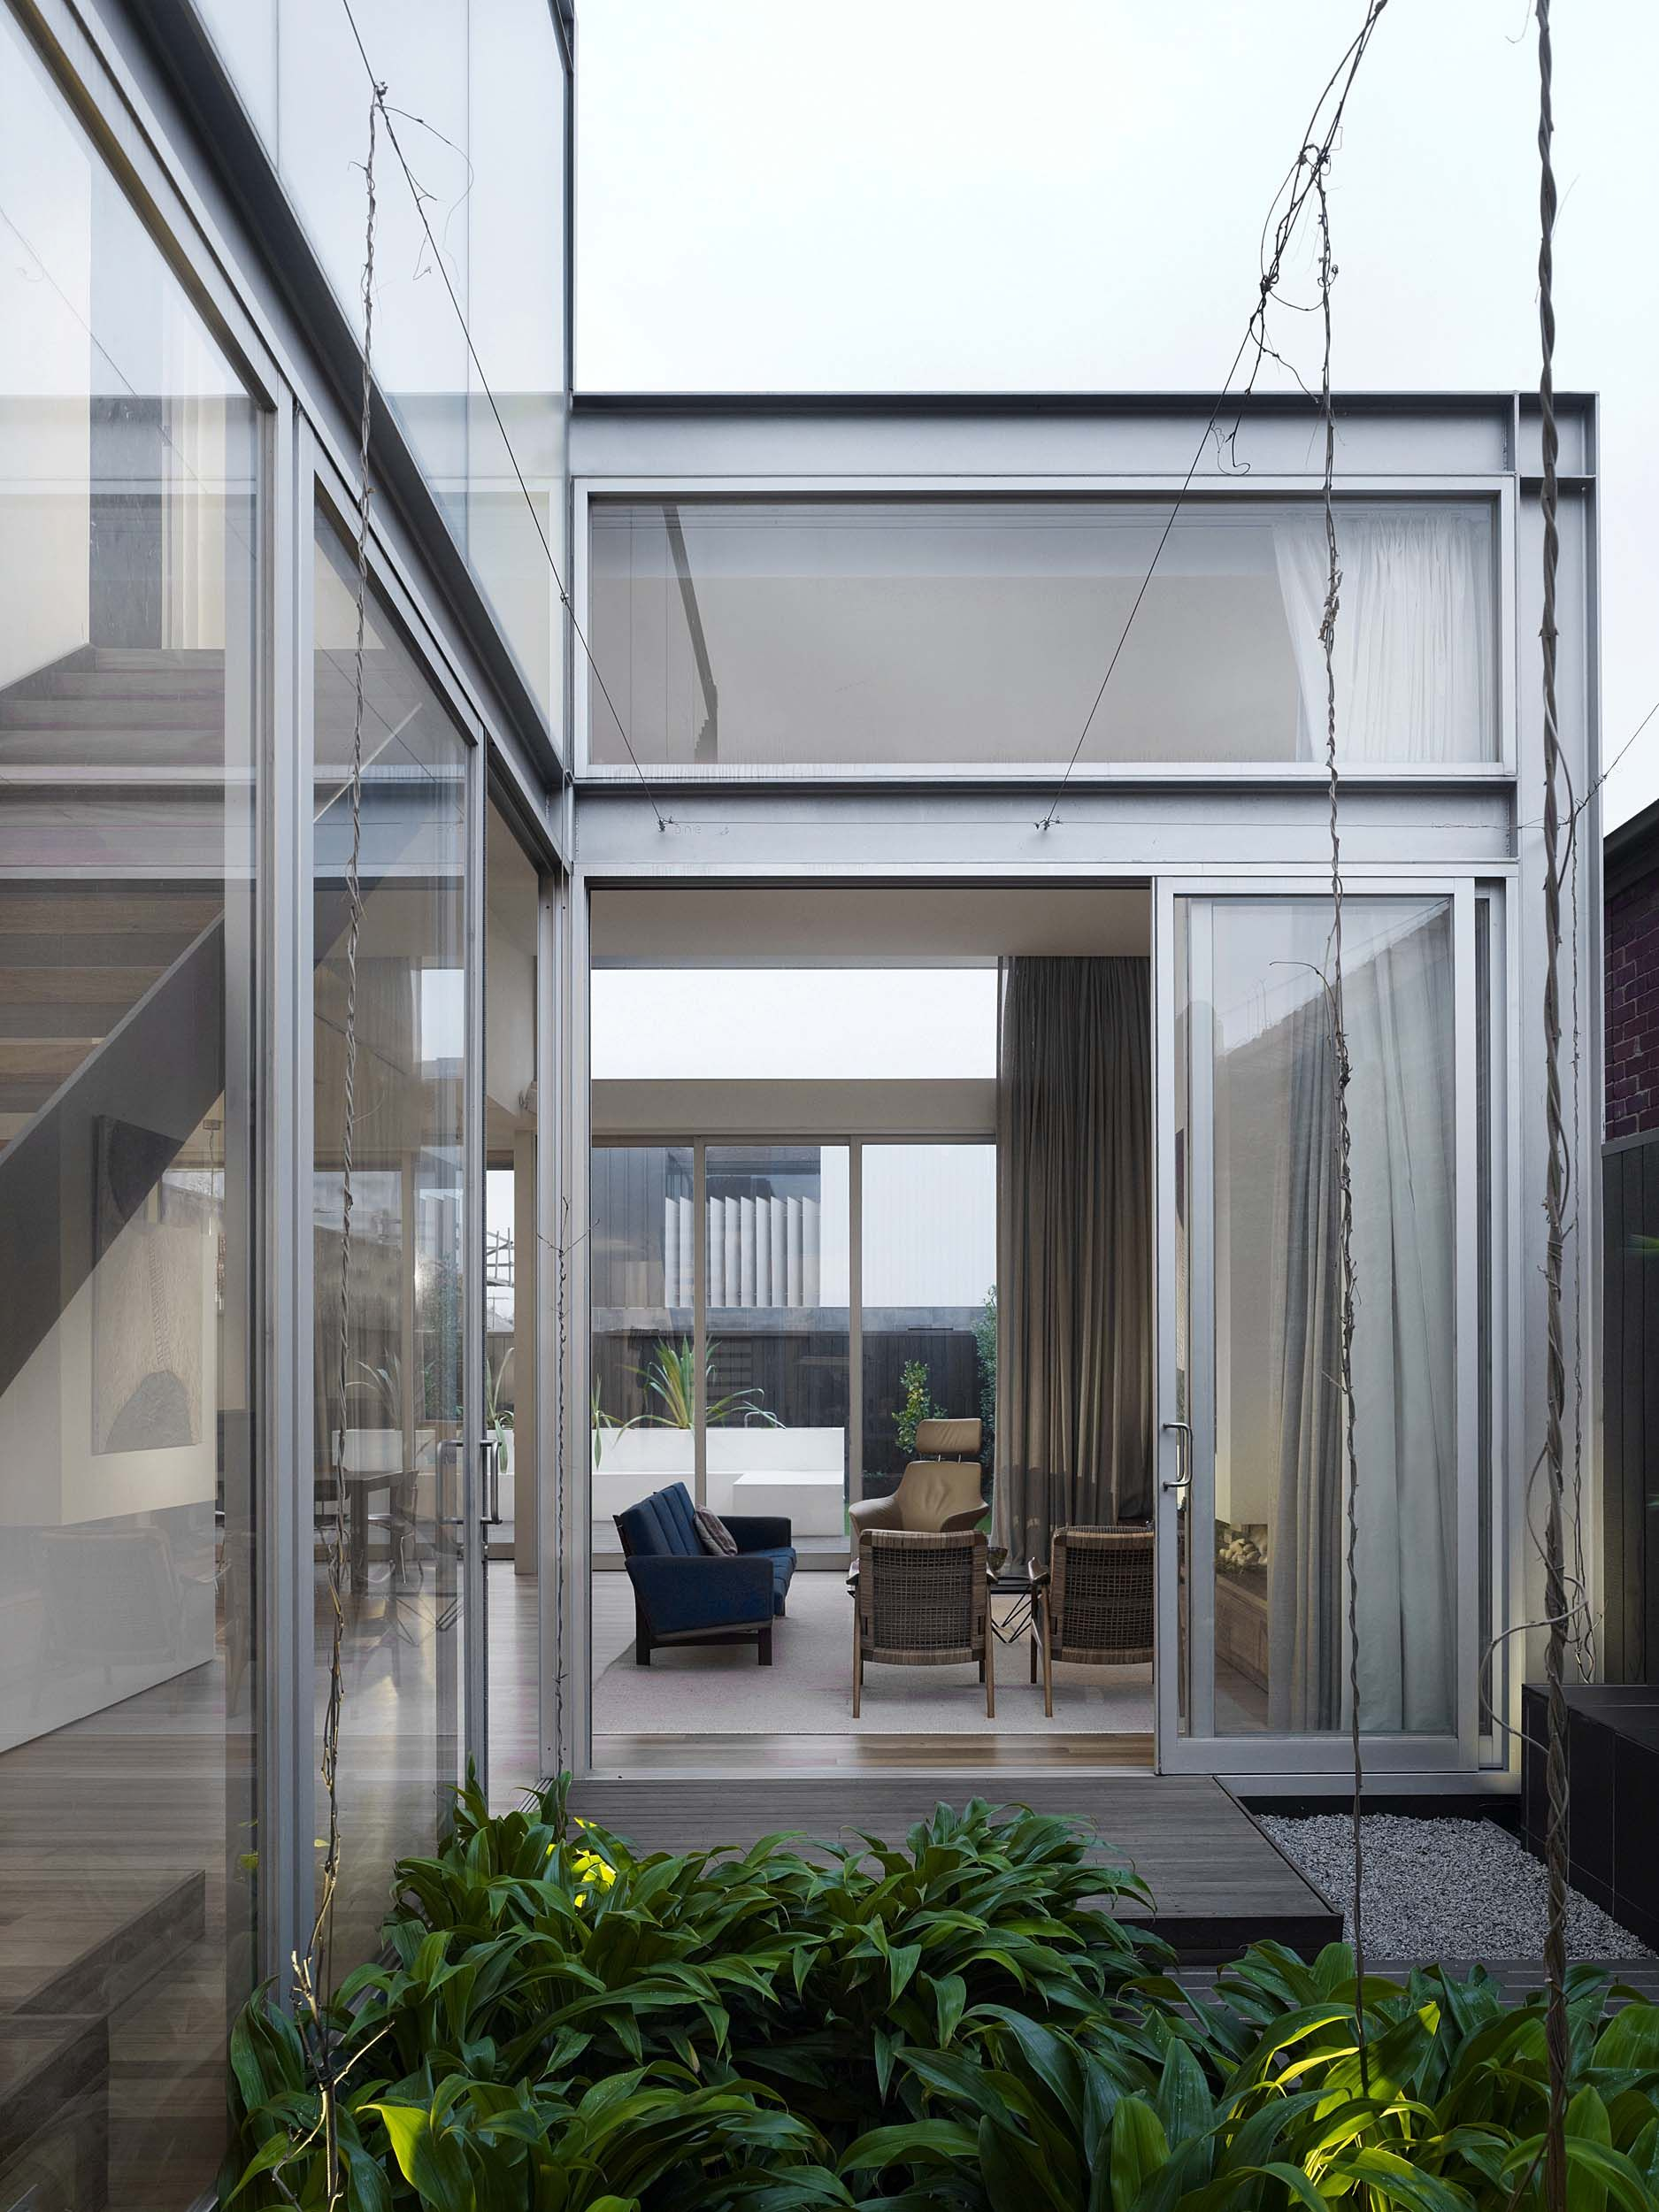 | Copolov House by Coy Yiontis Architects | Middle Park